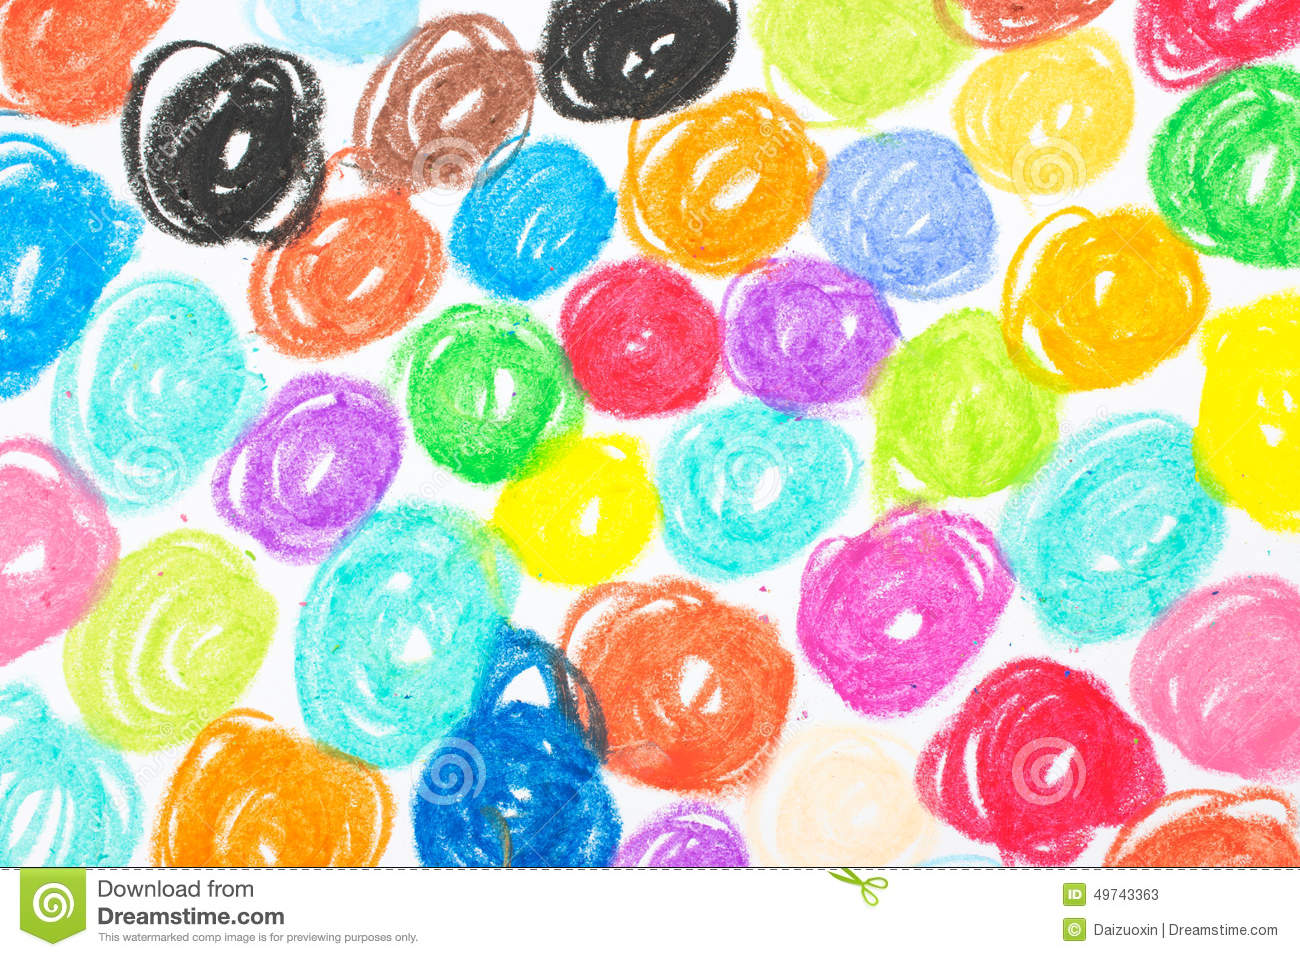 Crayon Scribble Drawing : Crayon scribble background stock photo image